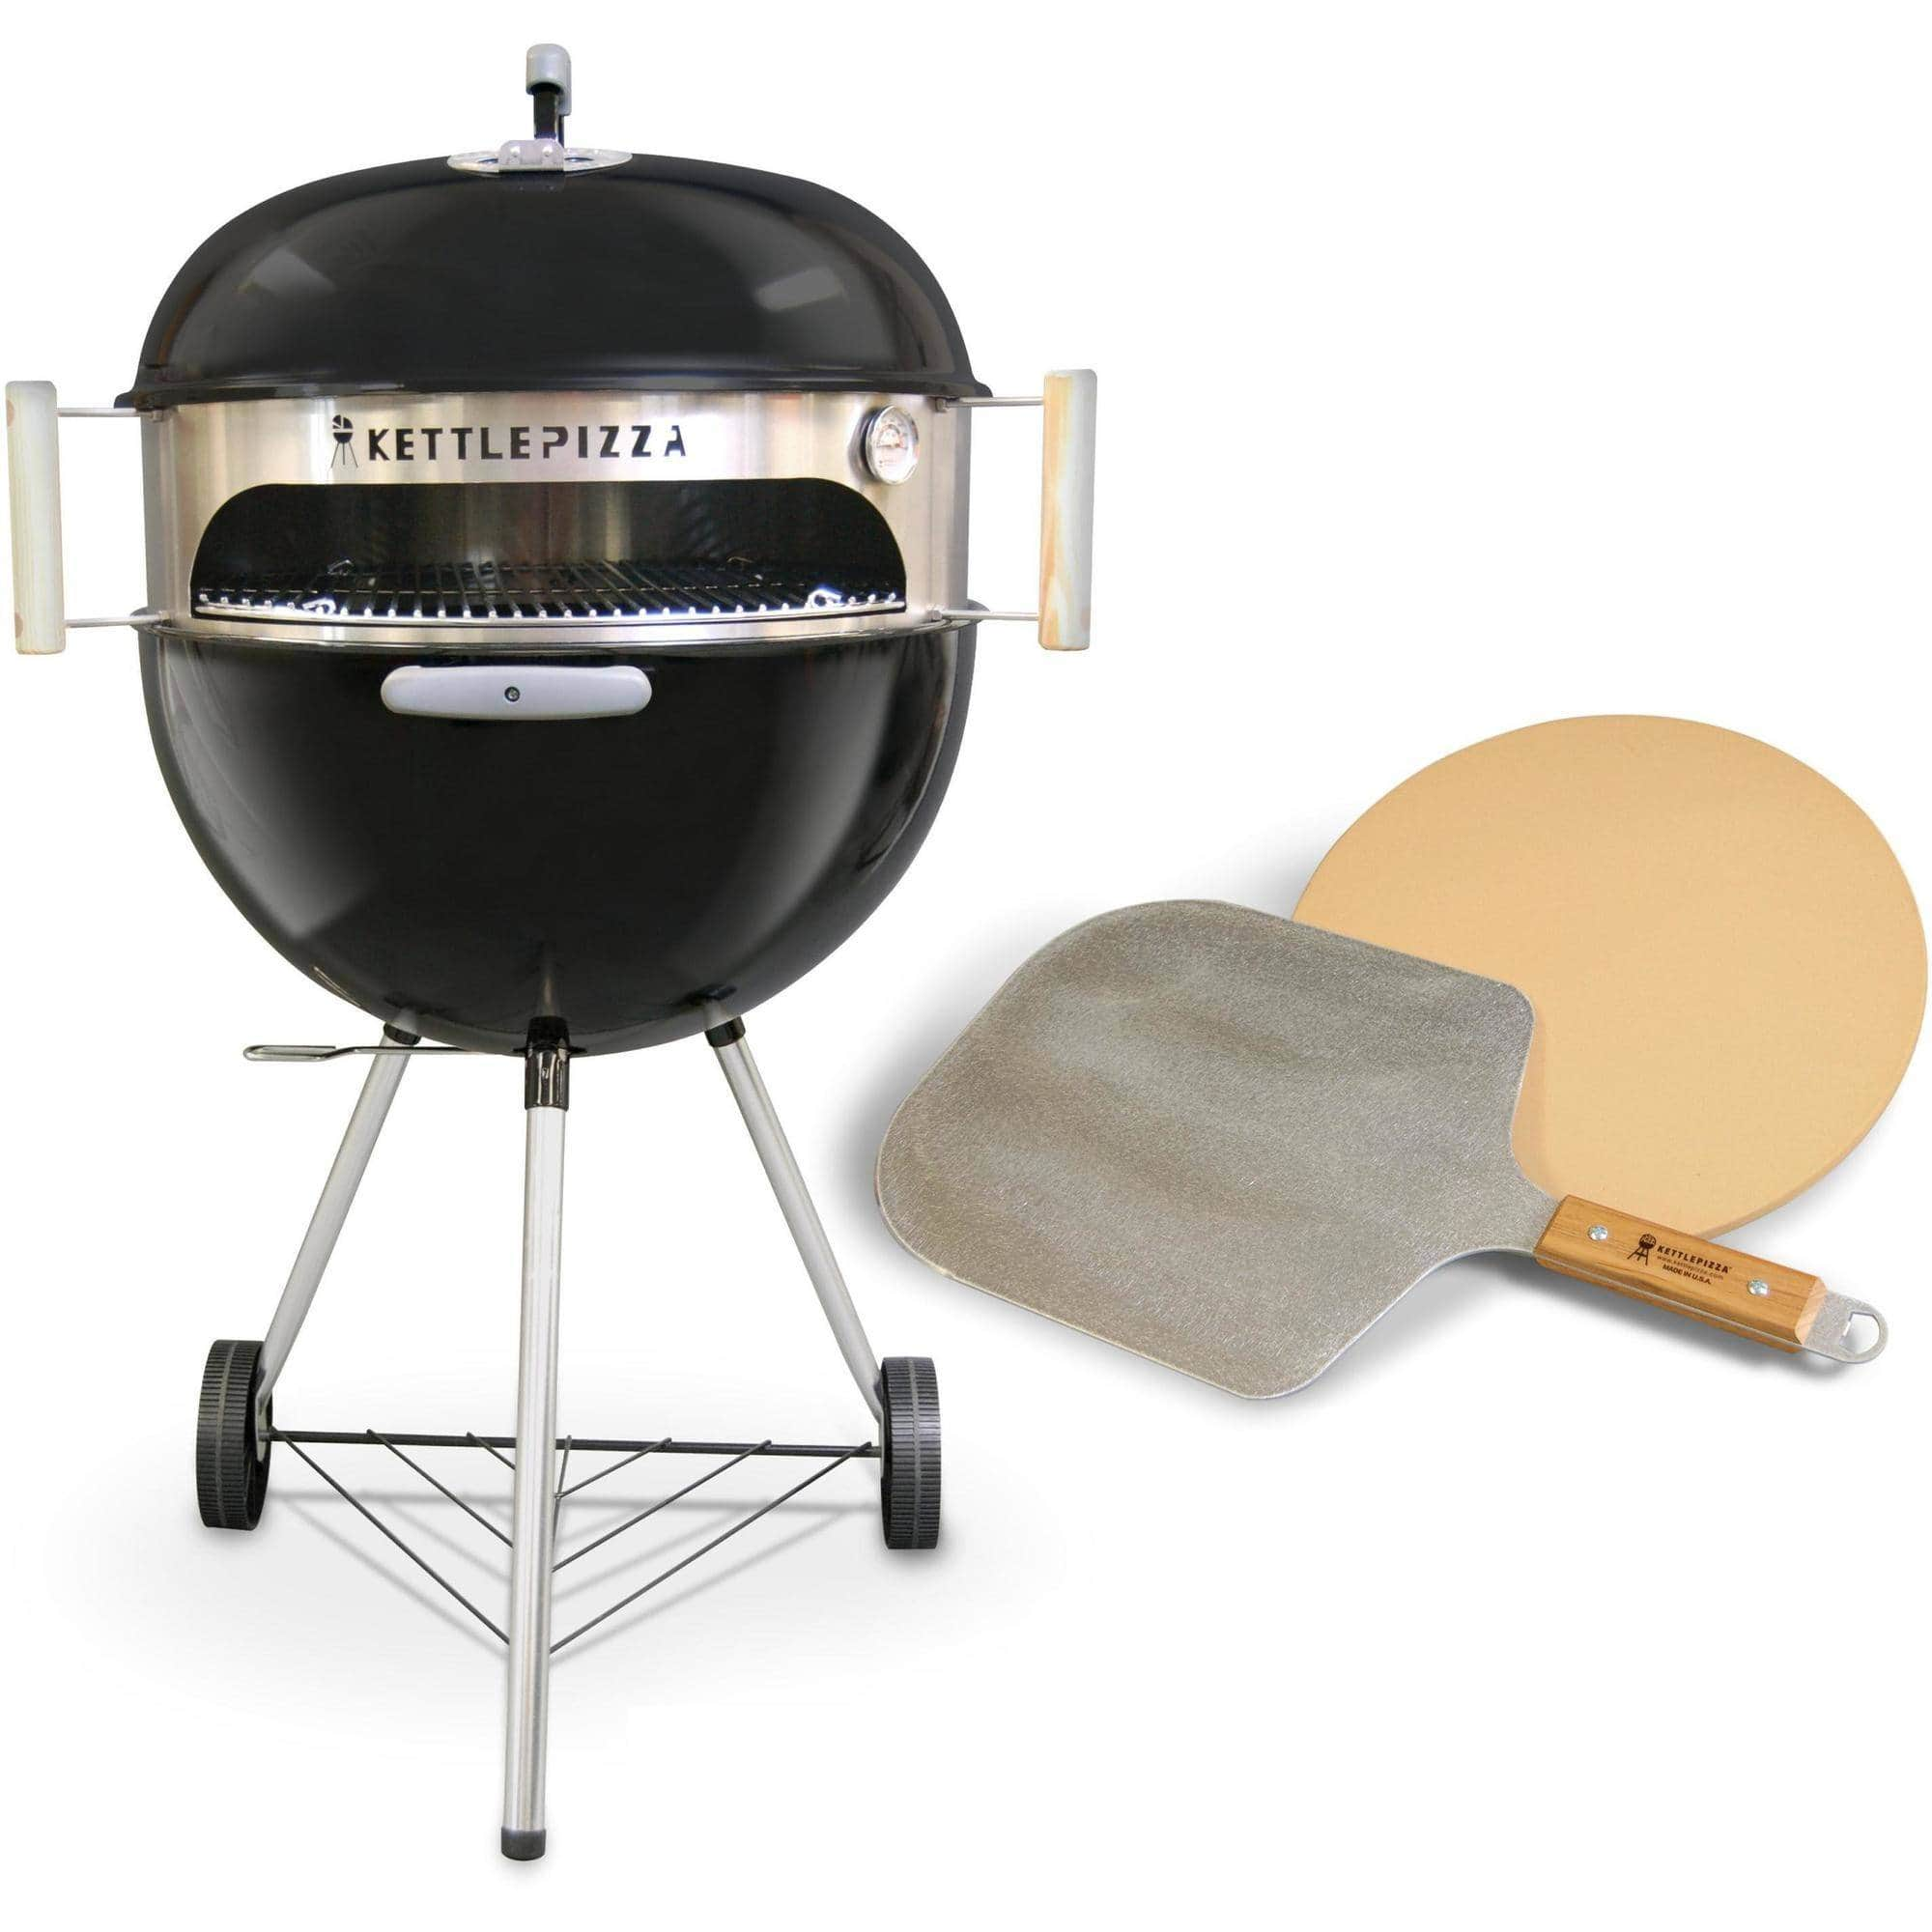 KettlePizza Deluxe (with Stone and Aluminum Peel) - Walmart B&M, YMMV $39